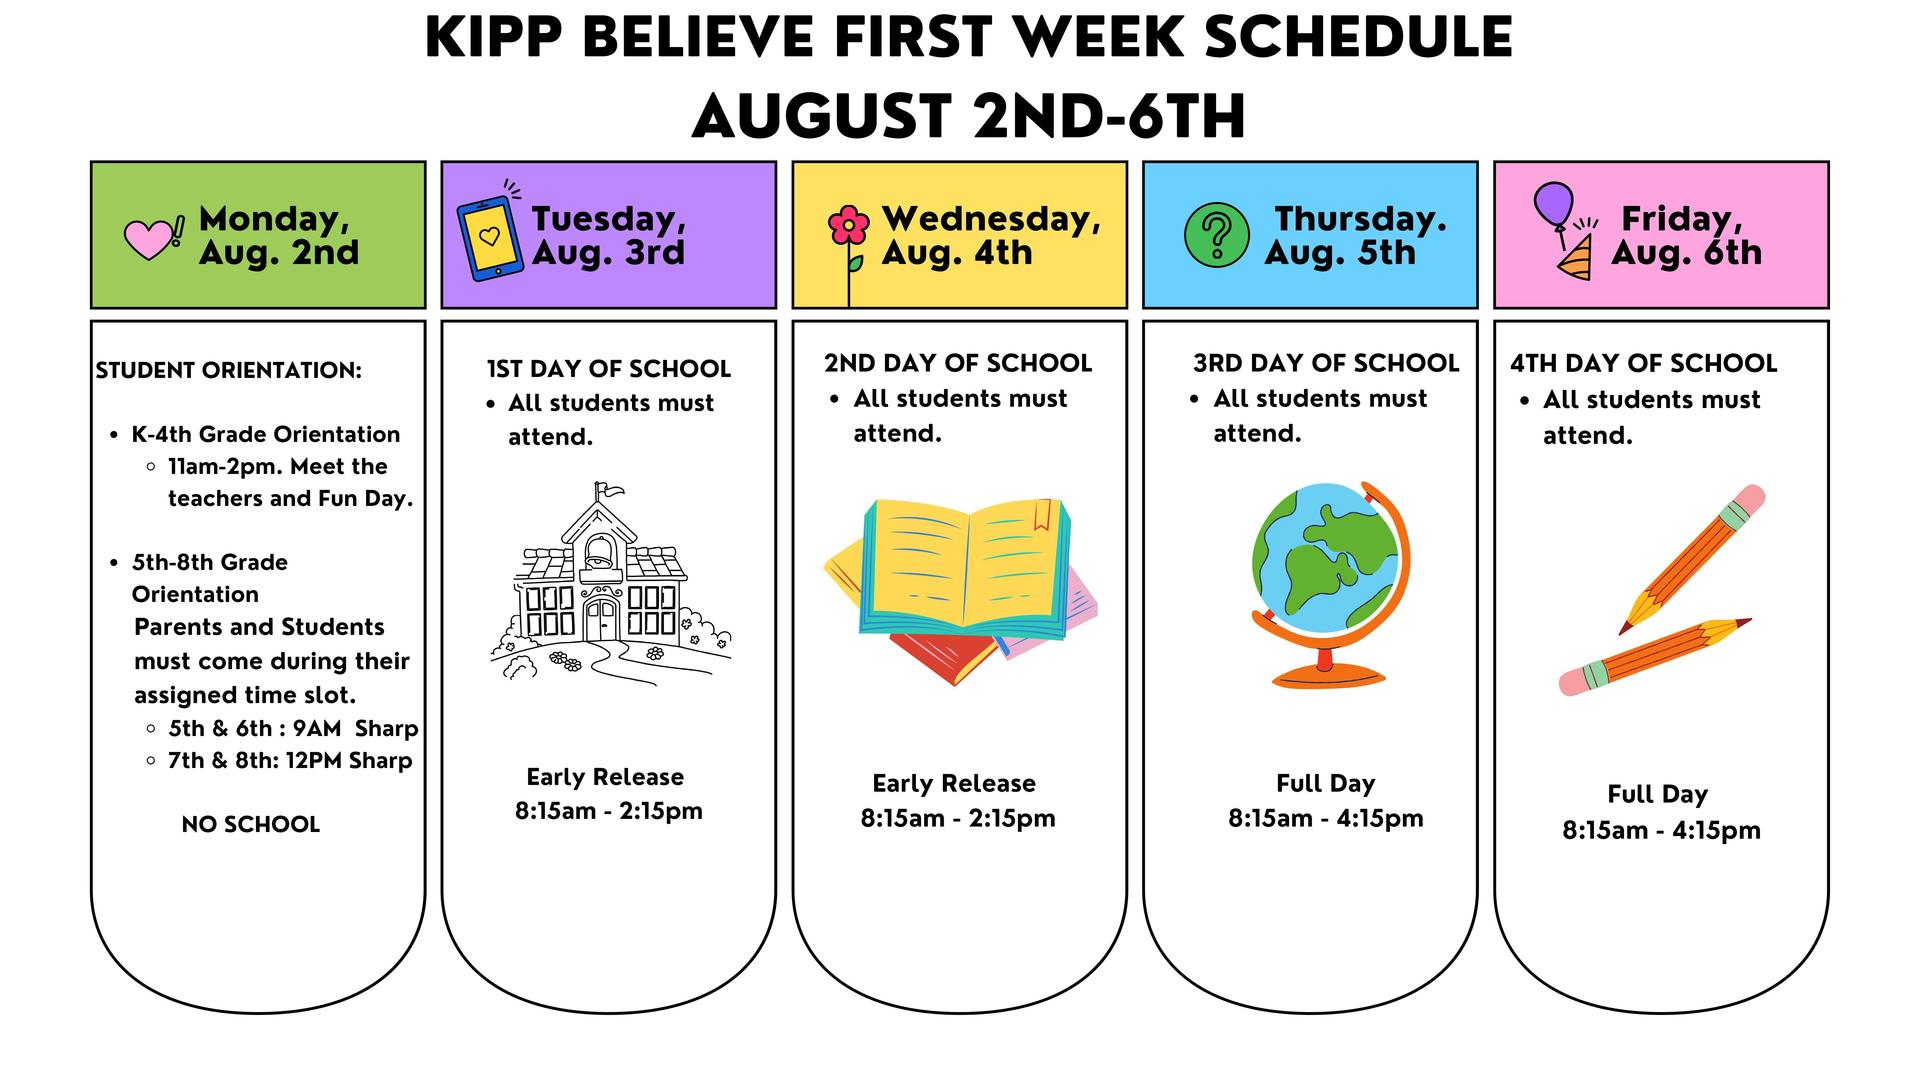 First Week of School Schedule. Aug 2nd - 6th